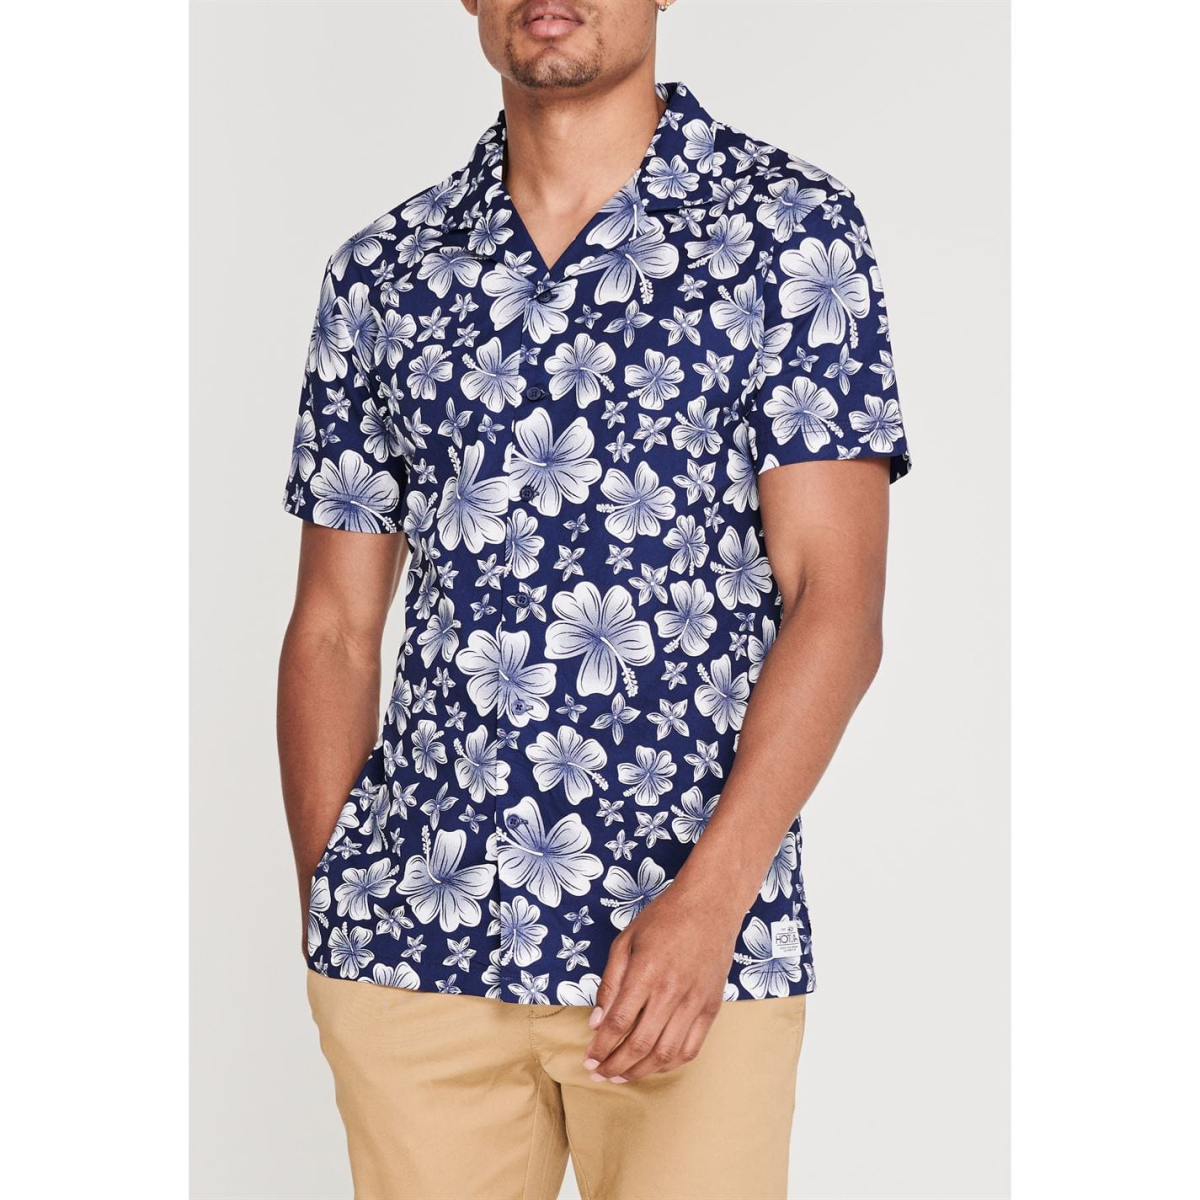 Hot Tuna Kurzarm All Over Print Hemd Shirt Herren Hibiscus